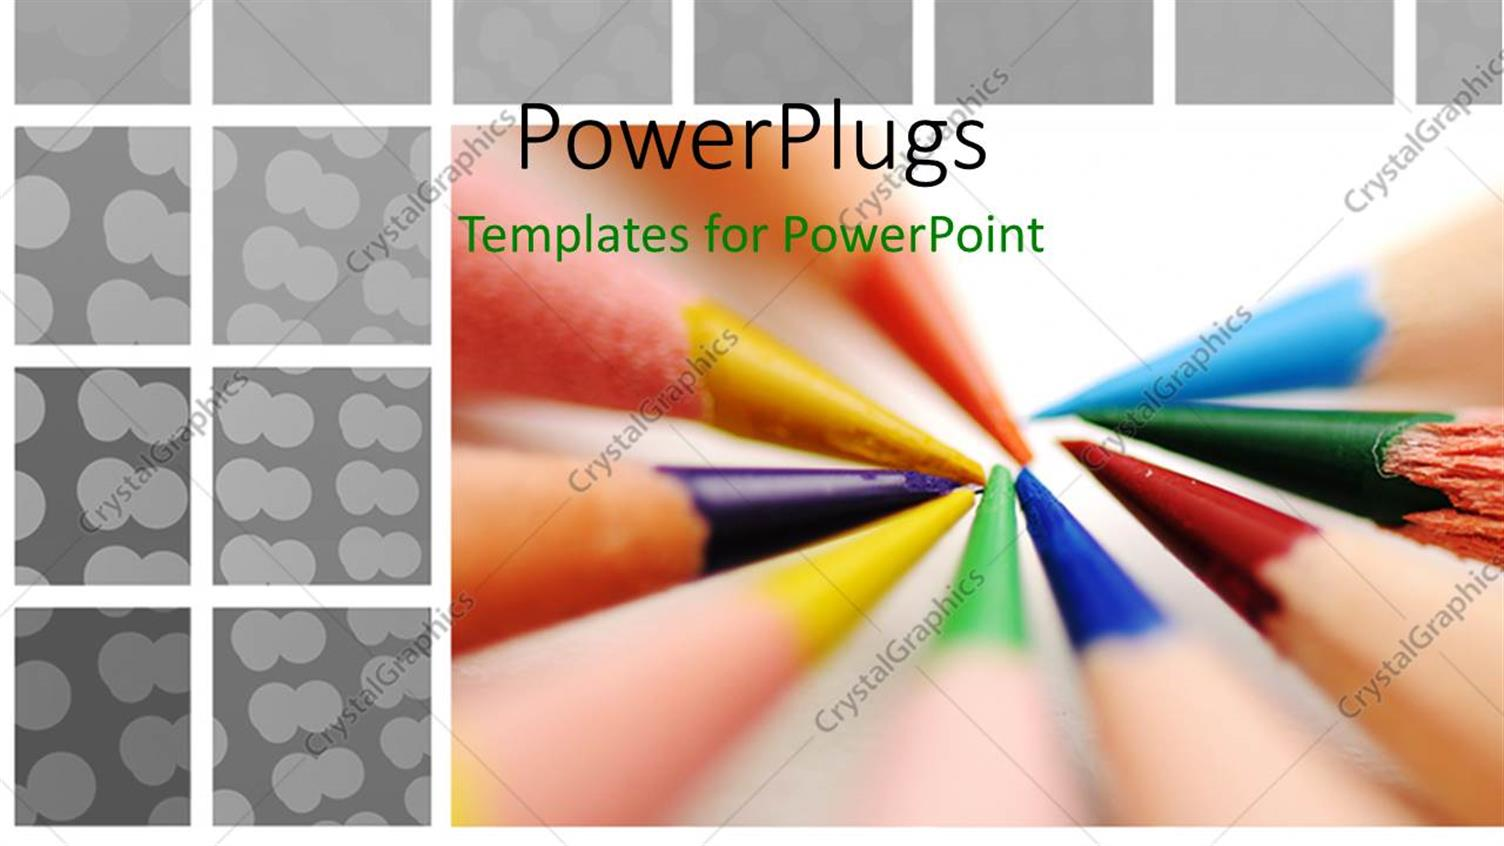 PowerPoint Template Displaying a Number of Color Pencils Together with White Background